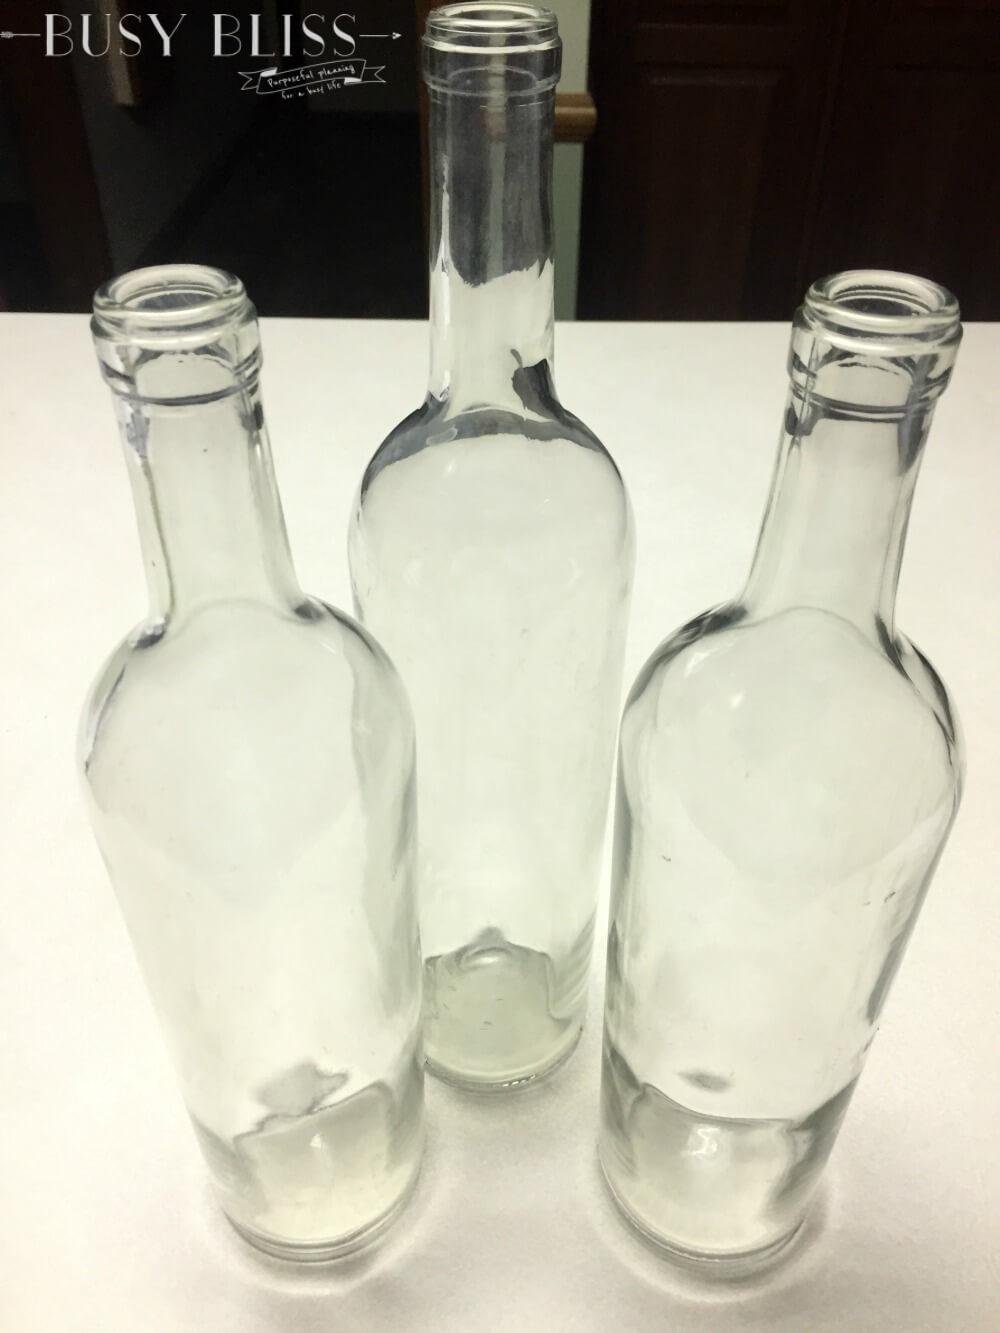 The simple way to make decorative wine bottles with a hot glue gun and spray paint. This project can be done in about an hour!